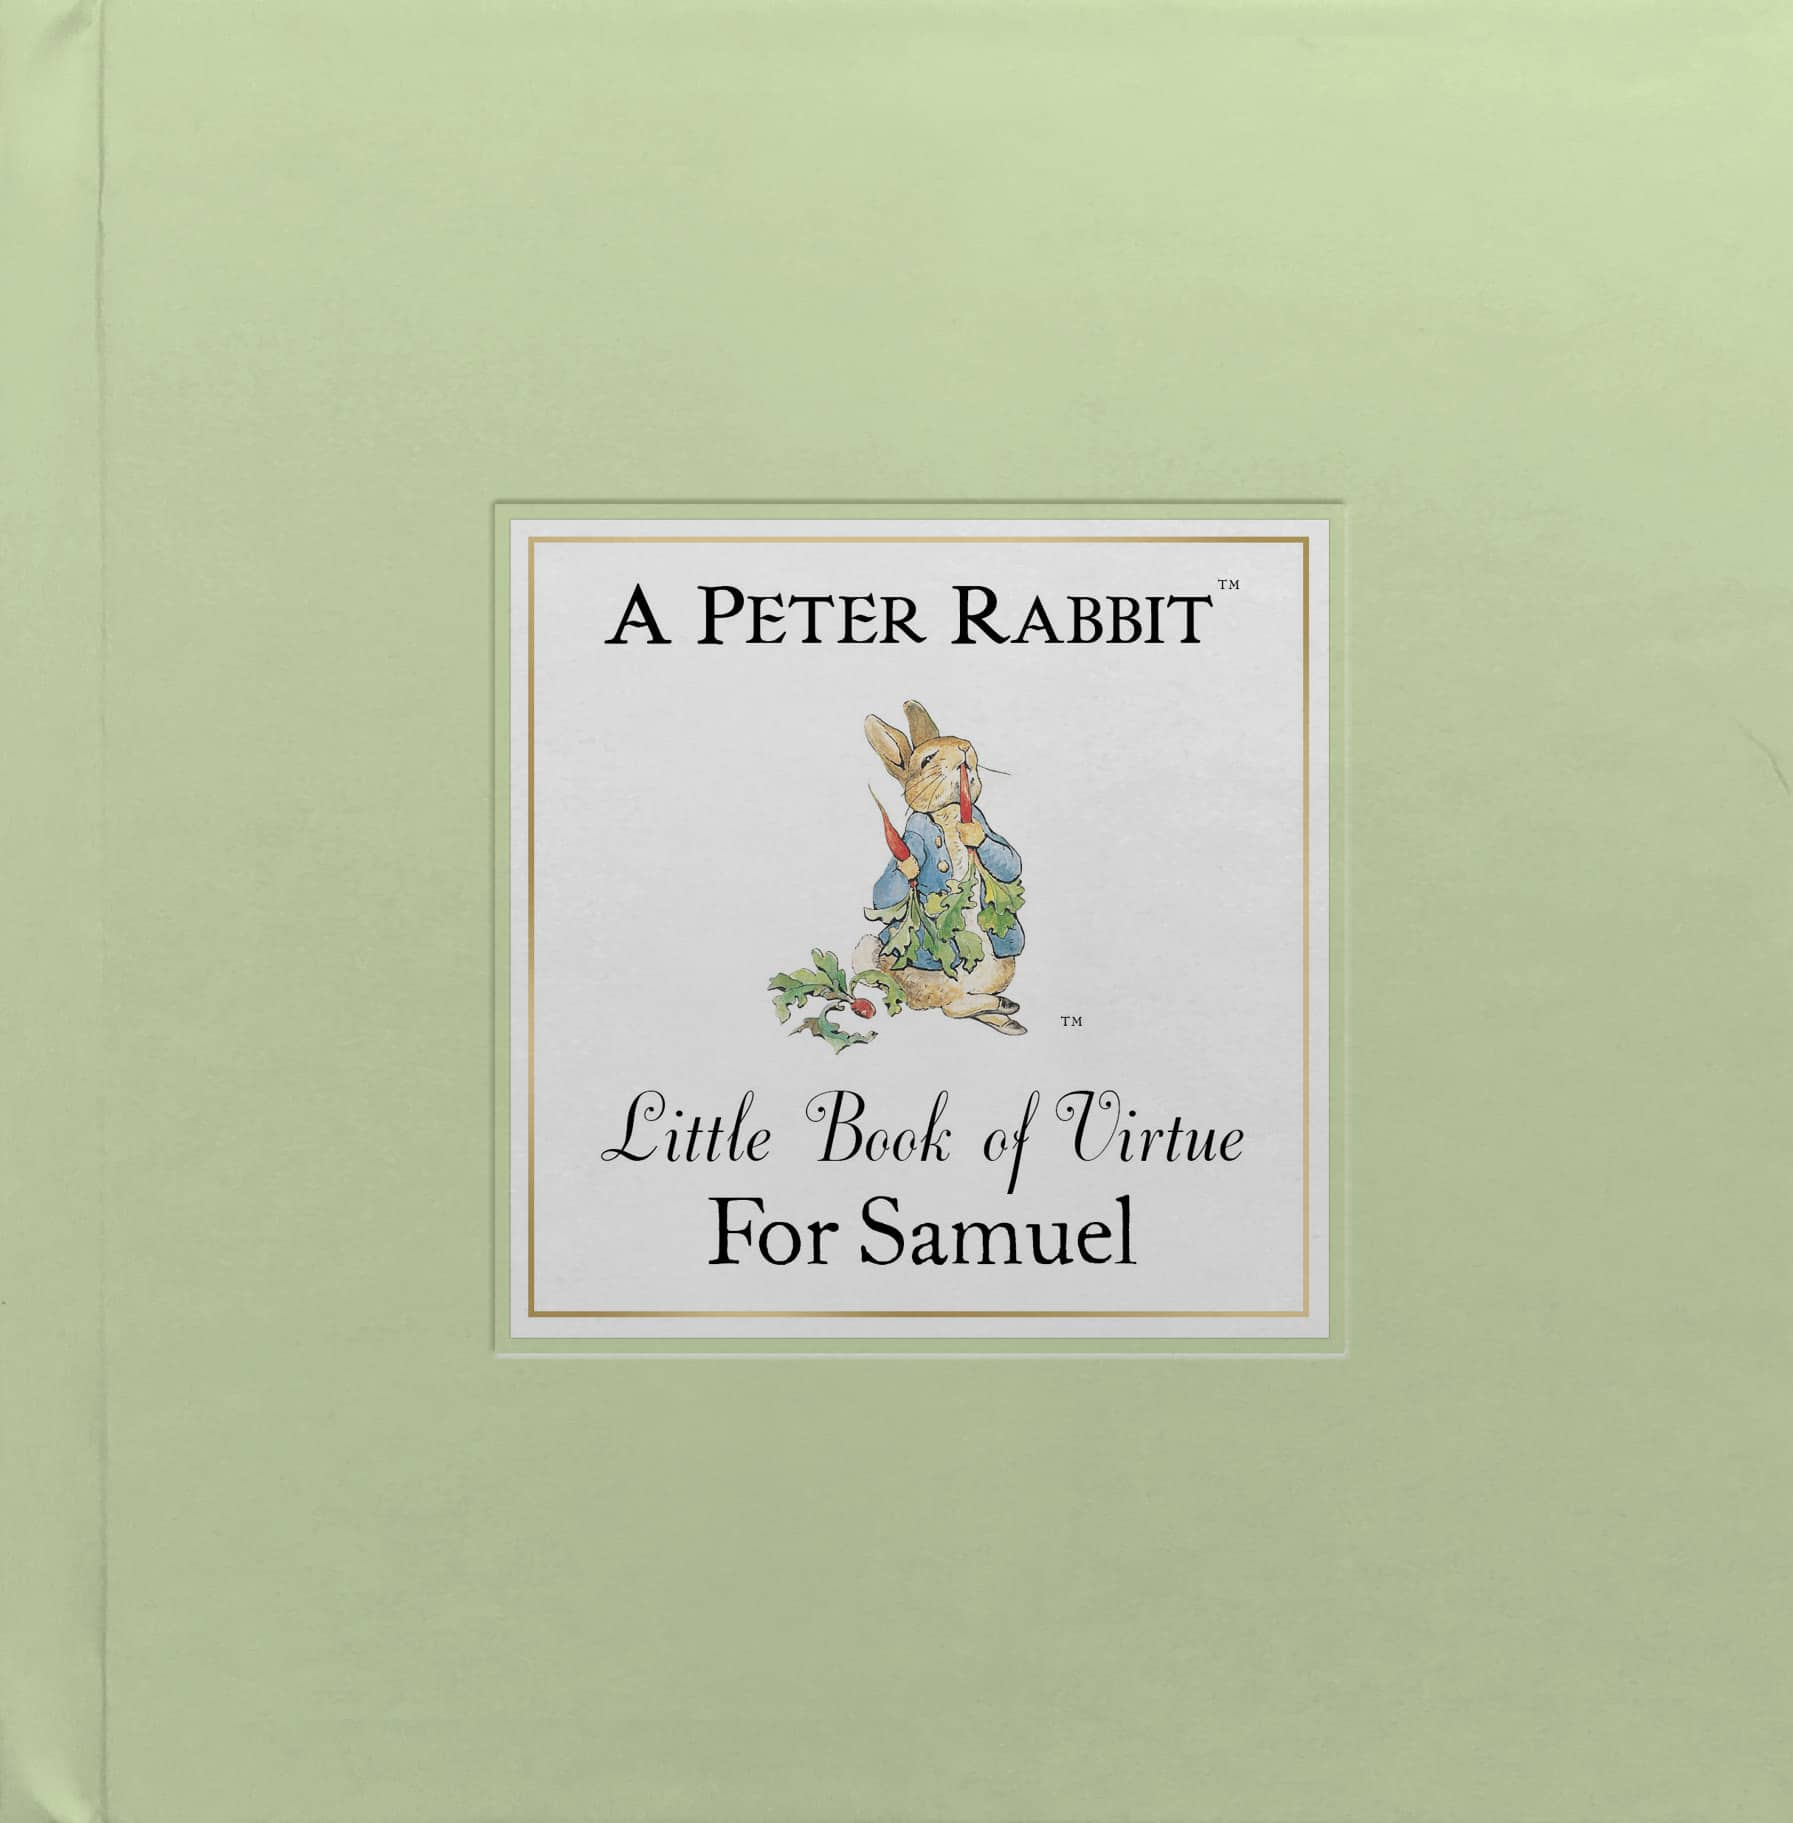 peter rabbit little book of virtue